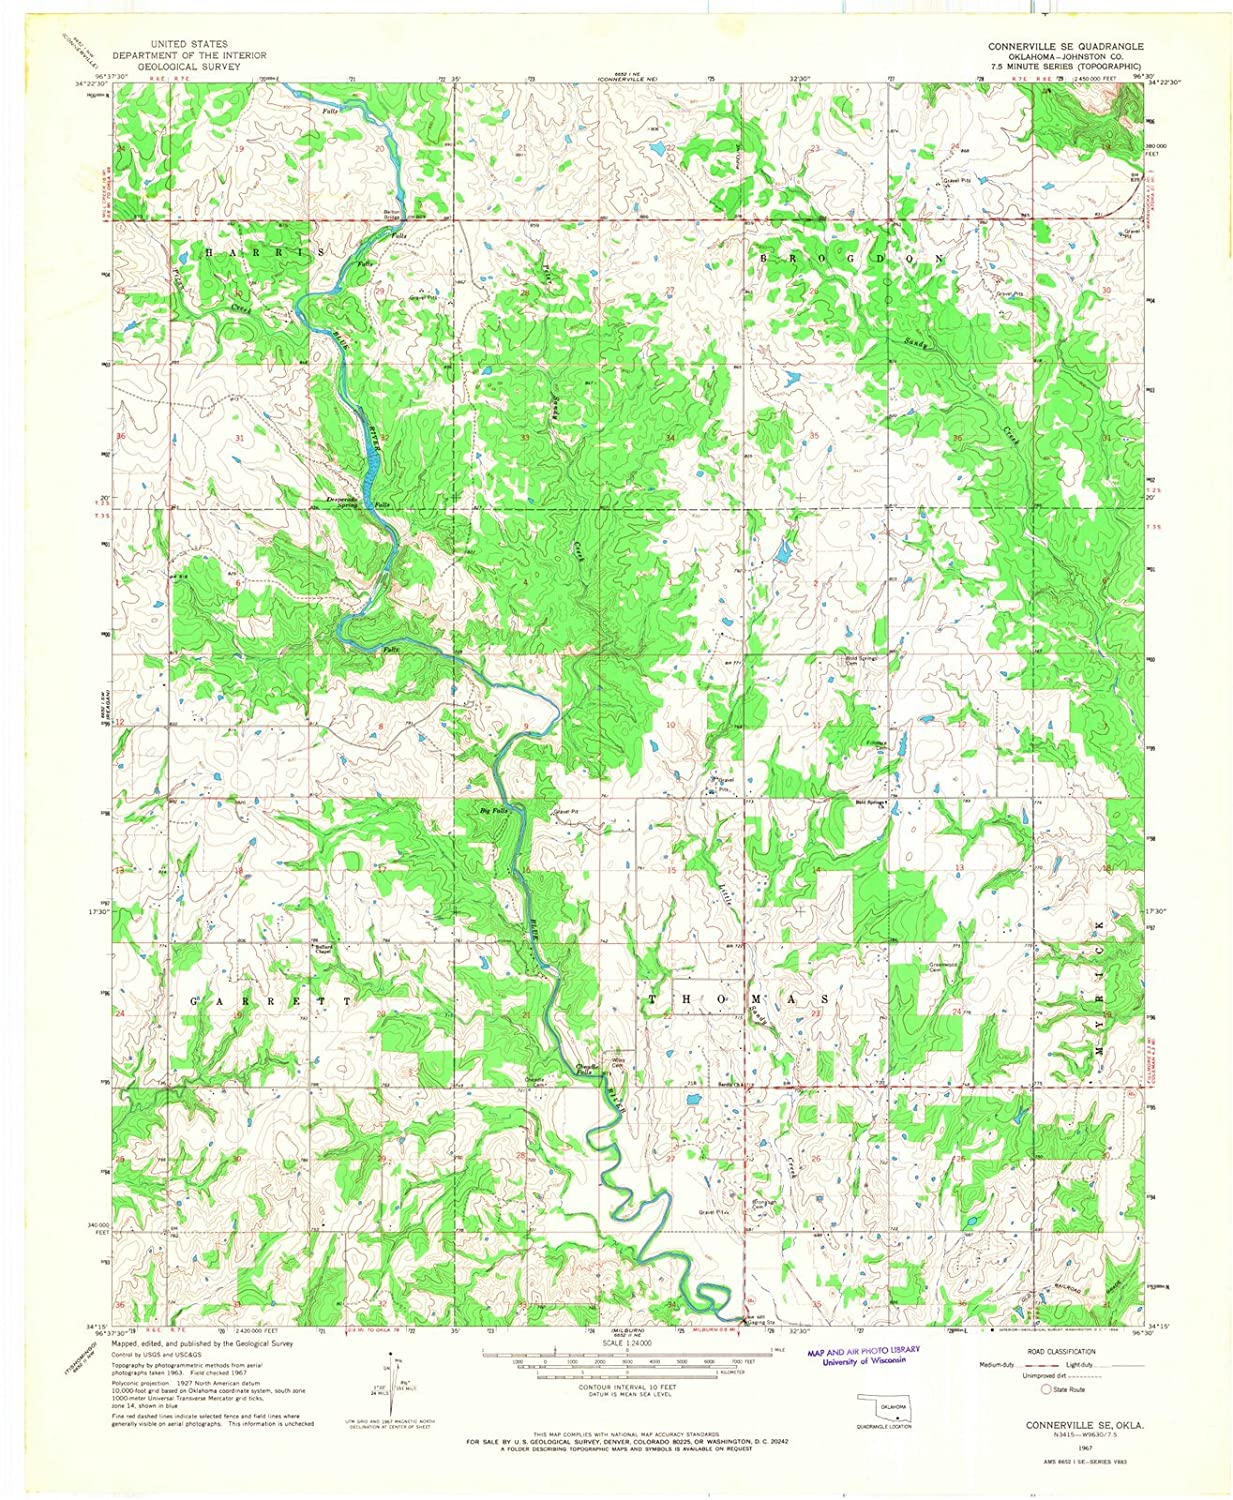 Amazon.com: Oklahoma Maps | 1967 Connerville, OK USGS Historical ...